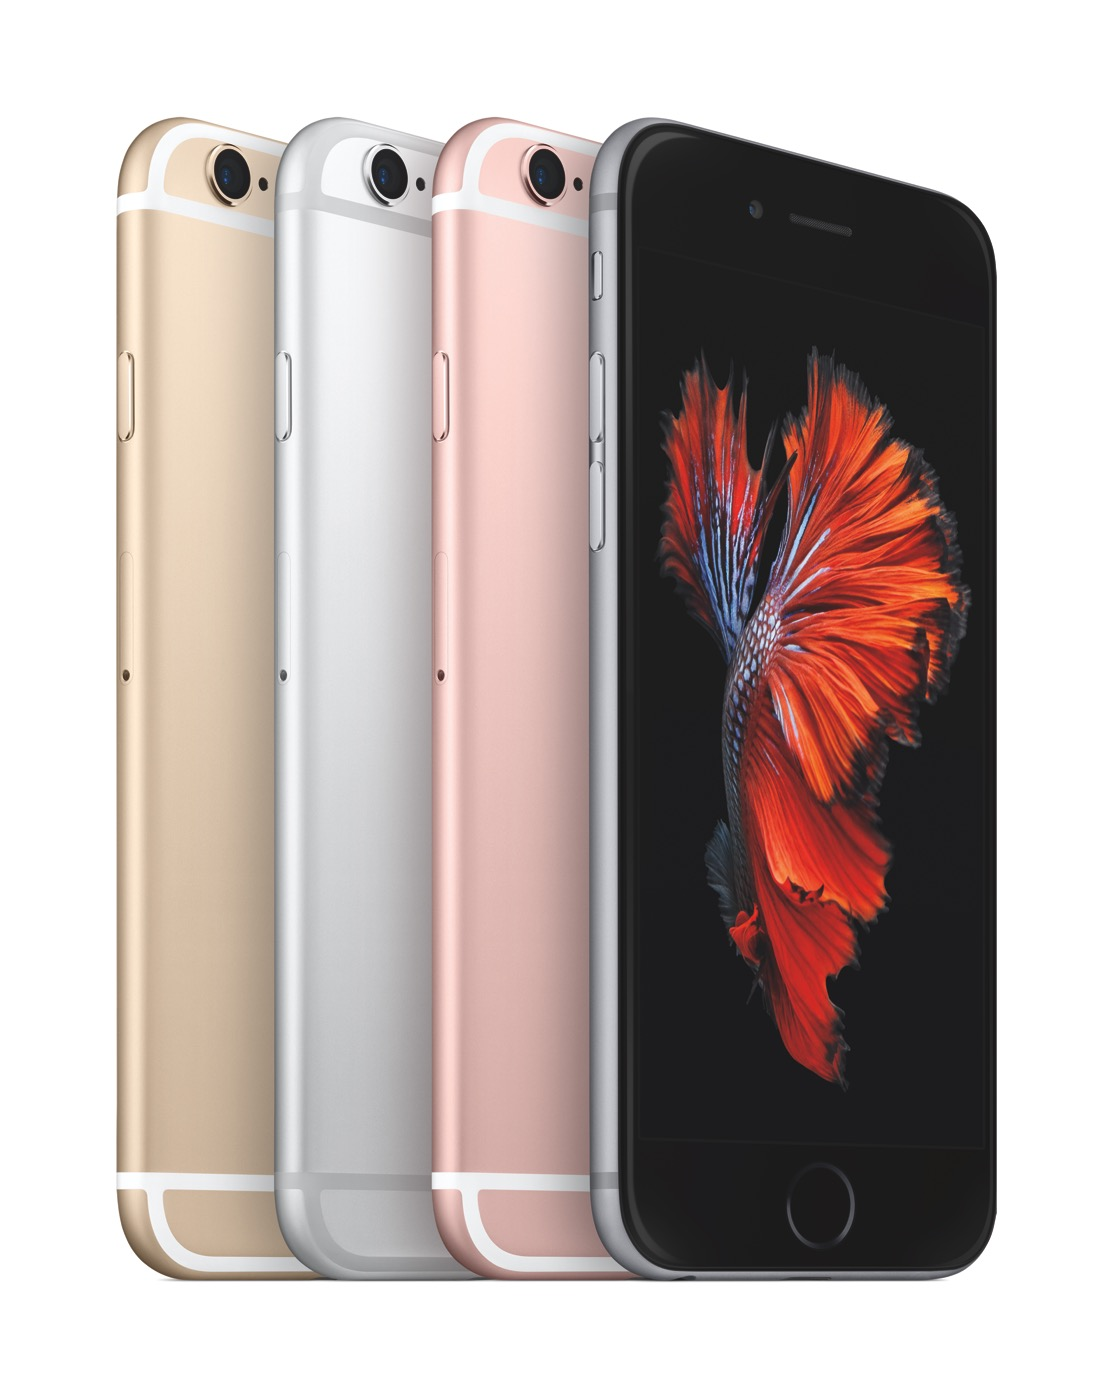 th_iPhone6s-4Color-RedFish-PR-PRINT